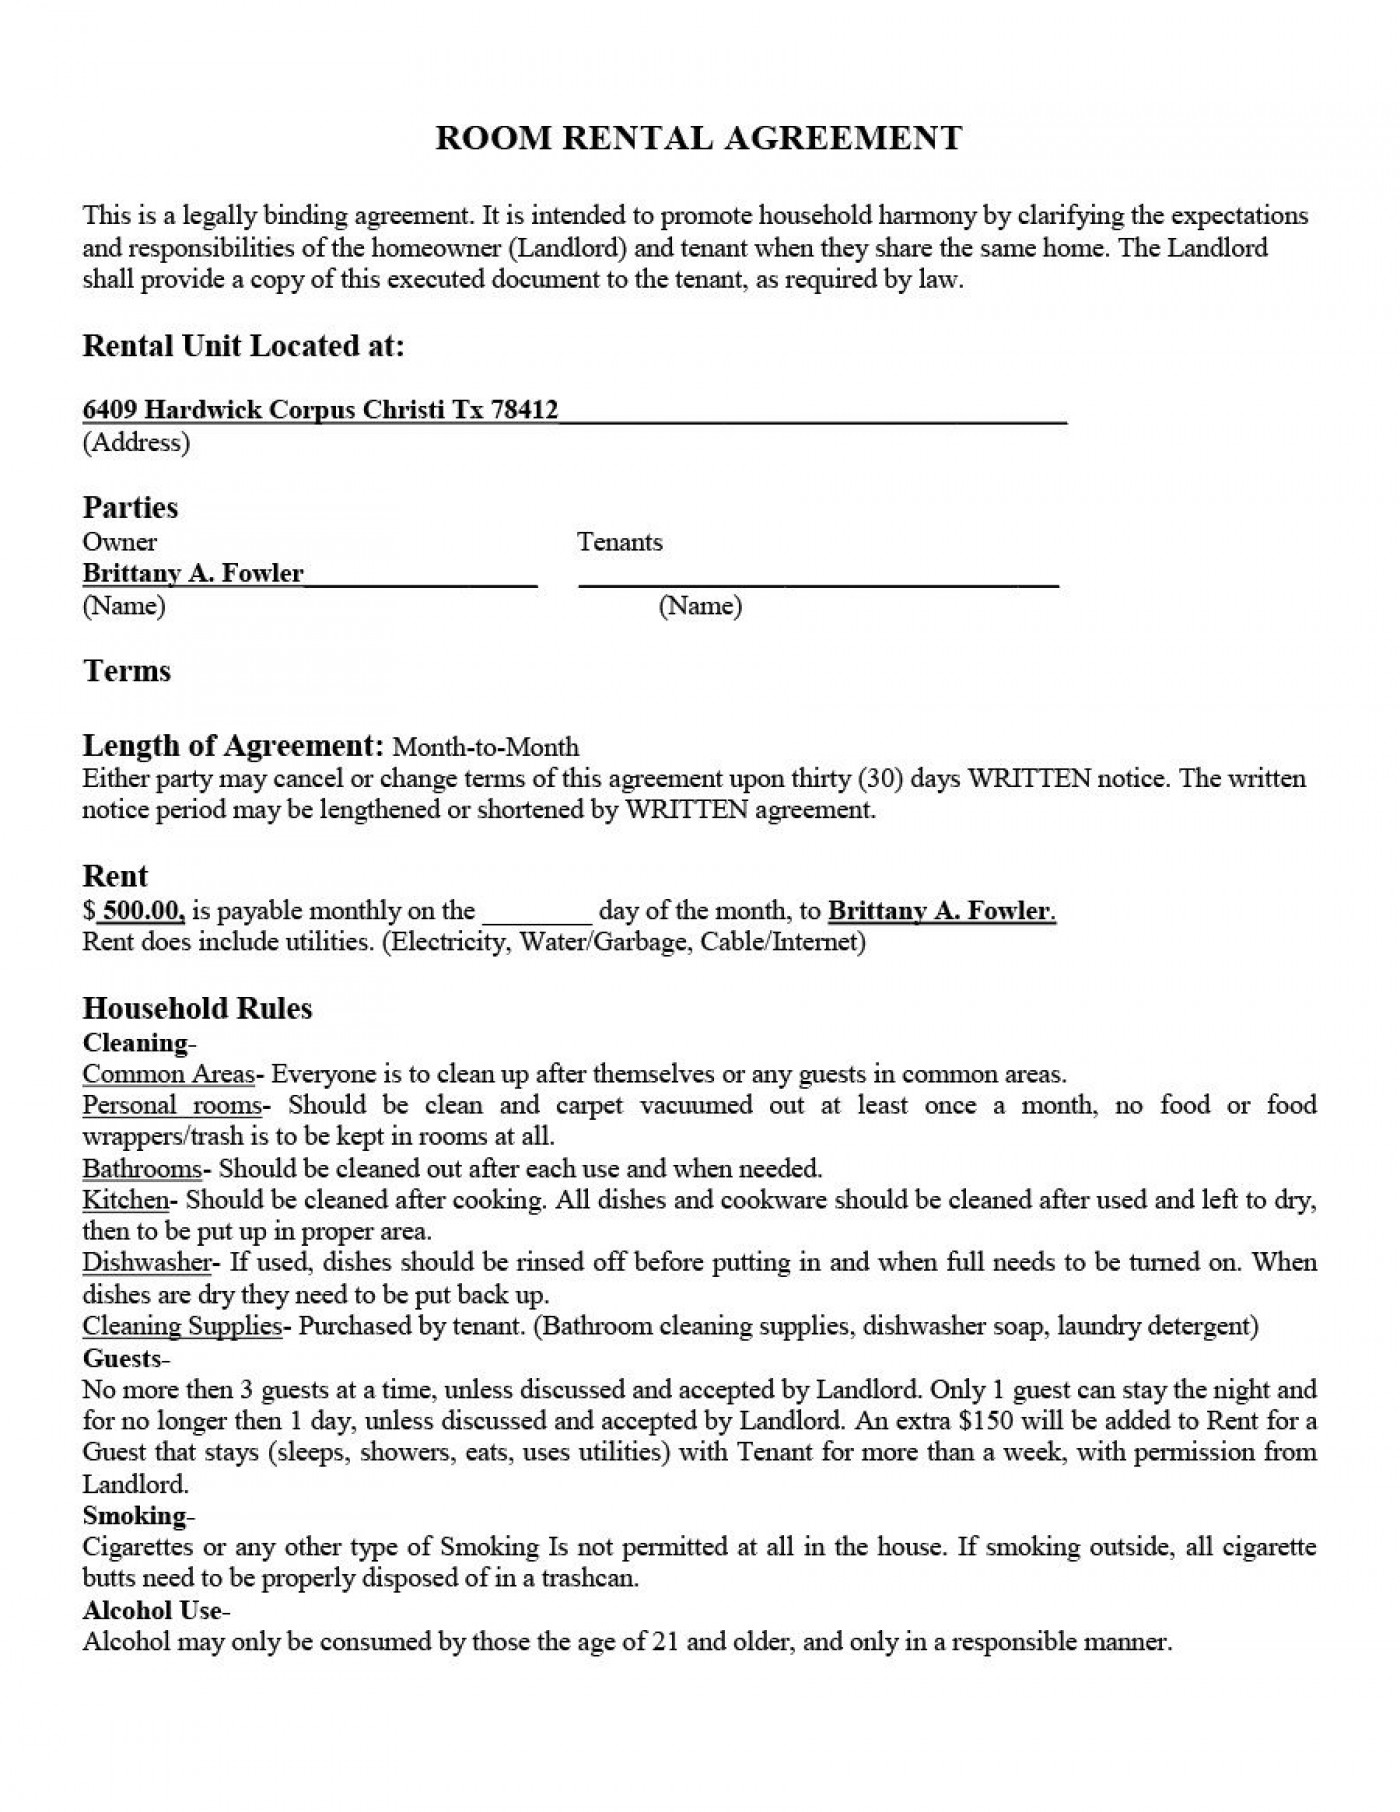 008 Fearsome Generic Room Rental Agreement Free High Definition  Printable1400